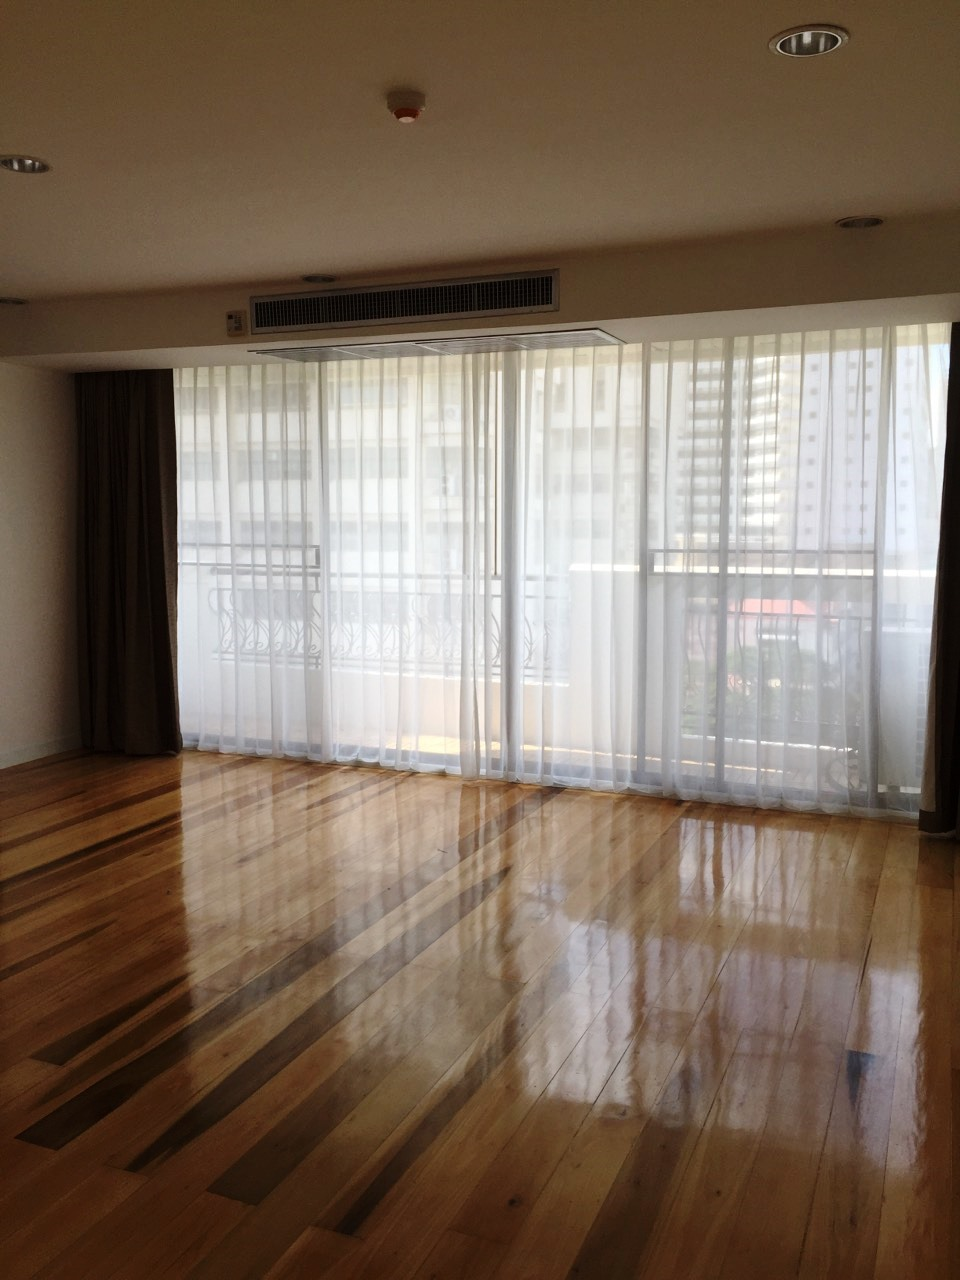 RE/MAX Properties Agency's Prime Mansion One, 3B/4B, MRT Petchaburi, Asoke 3